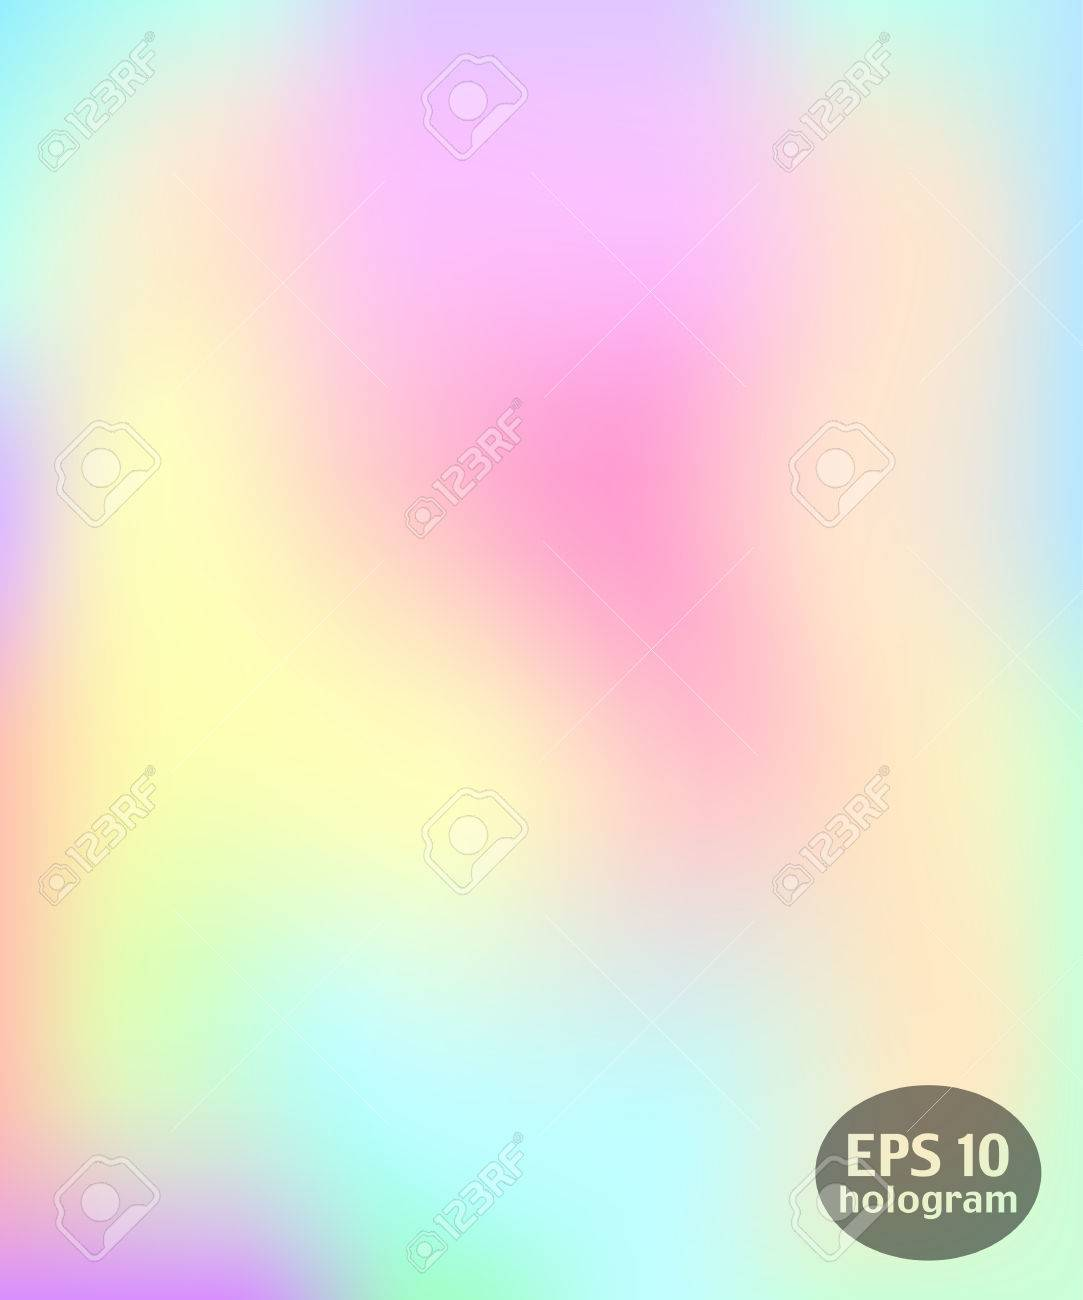 Hologram colorful background trendy modern design for print hologram colorful background trendy modern design for print web design filling silhouettes or kristyandbryce Gallery